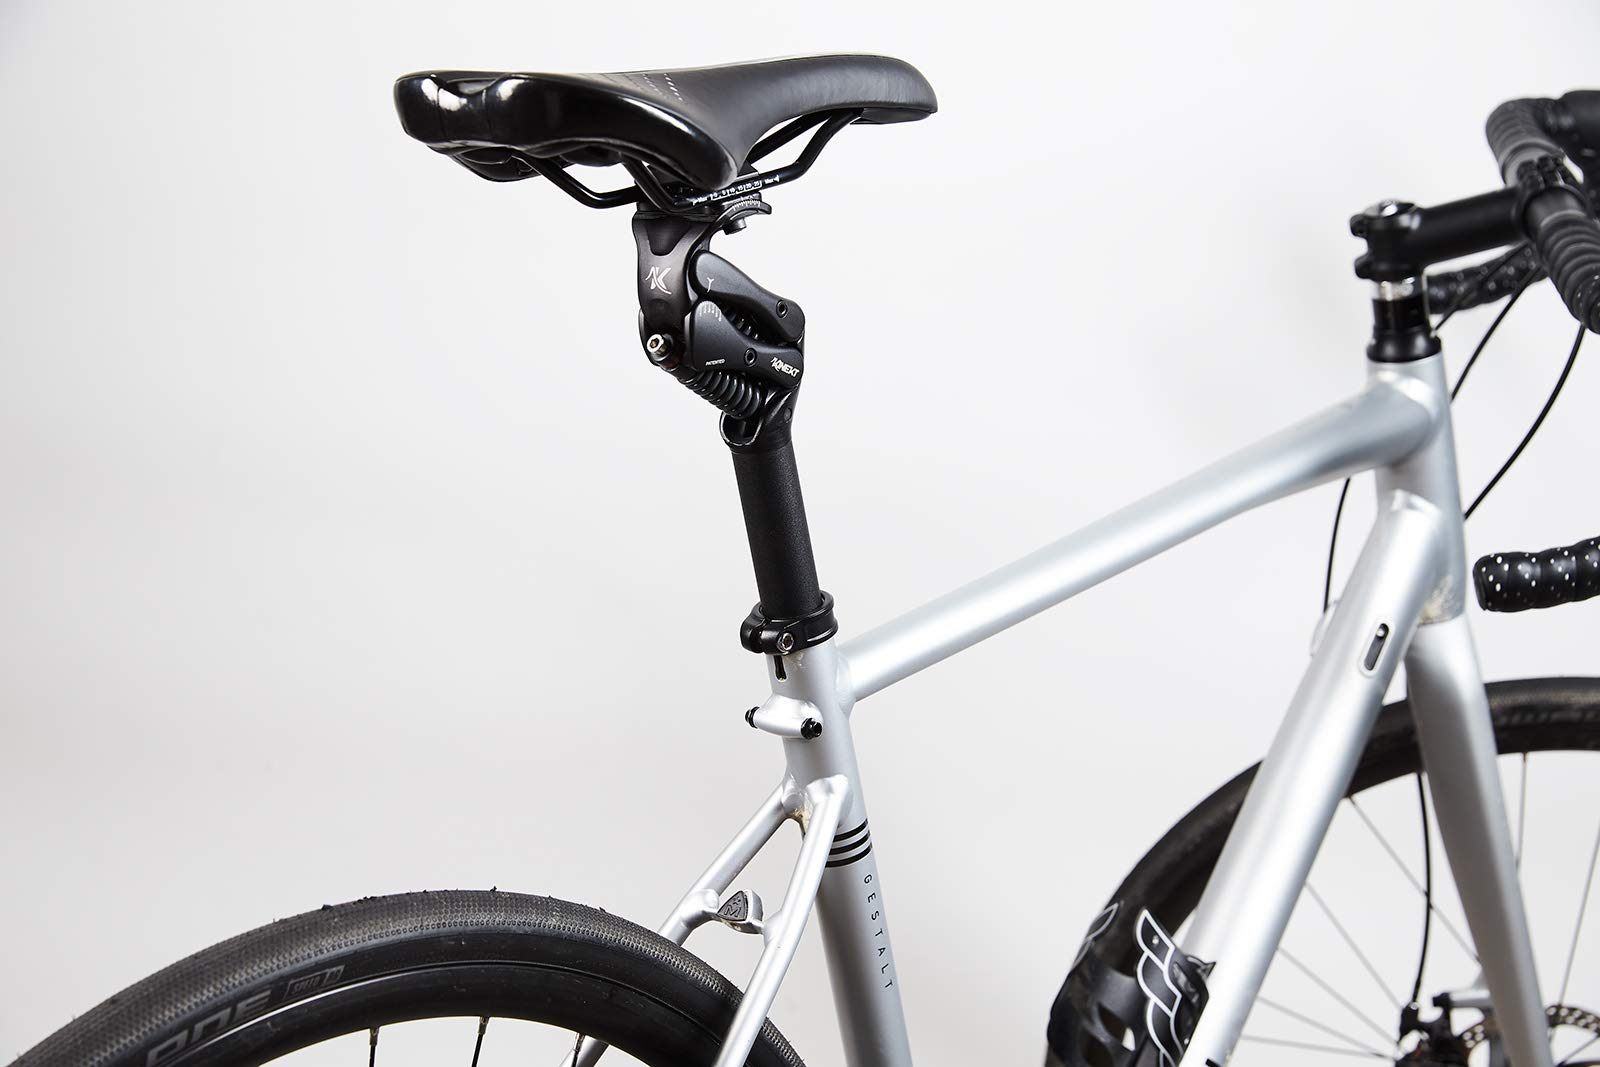 Cirrus Cycles KINEKT 2.1 Aluminum Bike Seatpost with Suspension, Post 30.9 x 350 mm, Weight MD 150-200 lb by Cirrus Cycles